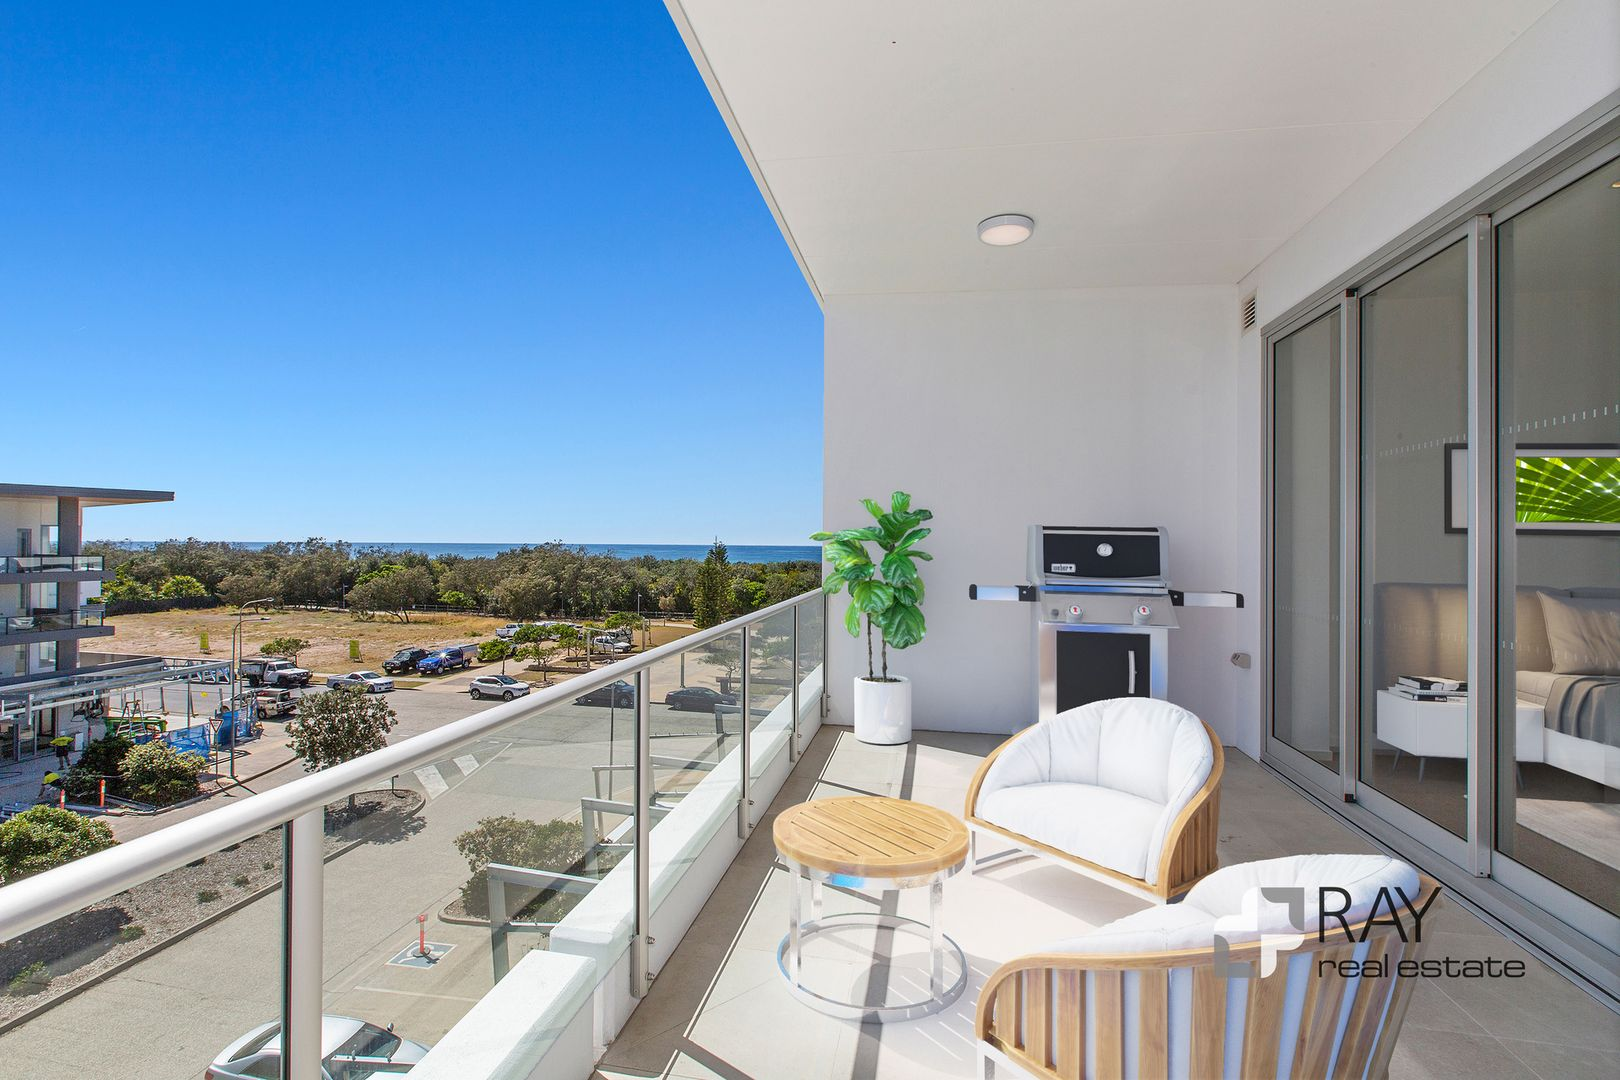 10/62 Cylinders Drive - Seaside Apartments, Kingscliff NSW 2487, Image 1